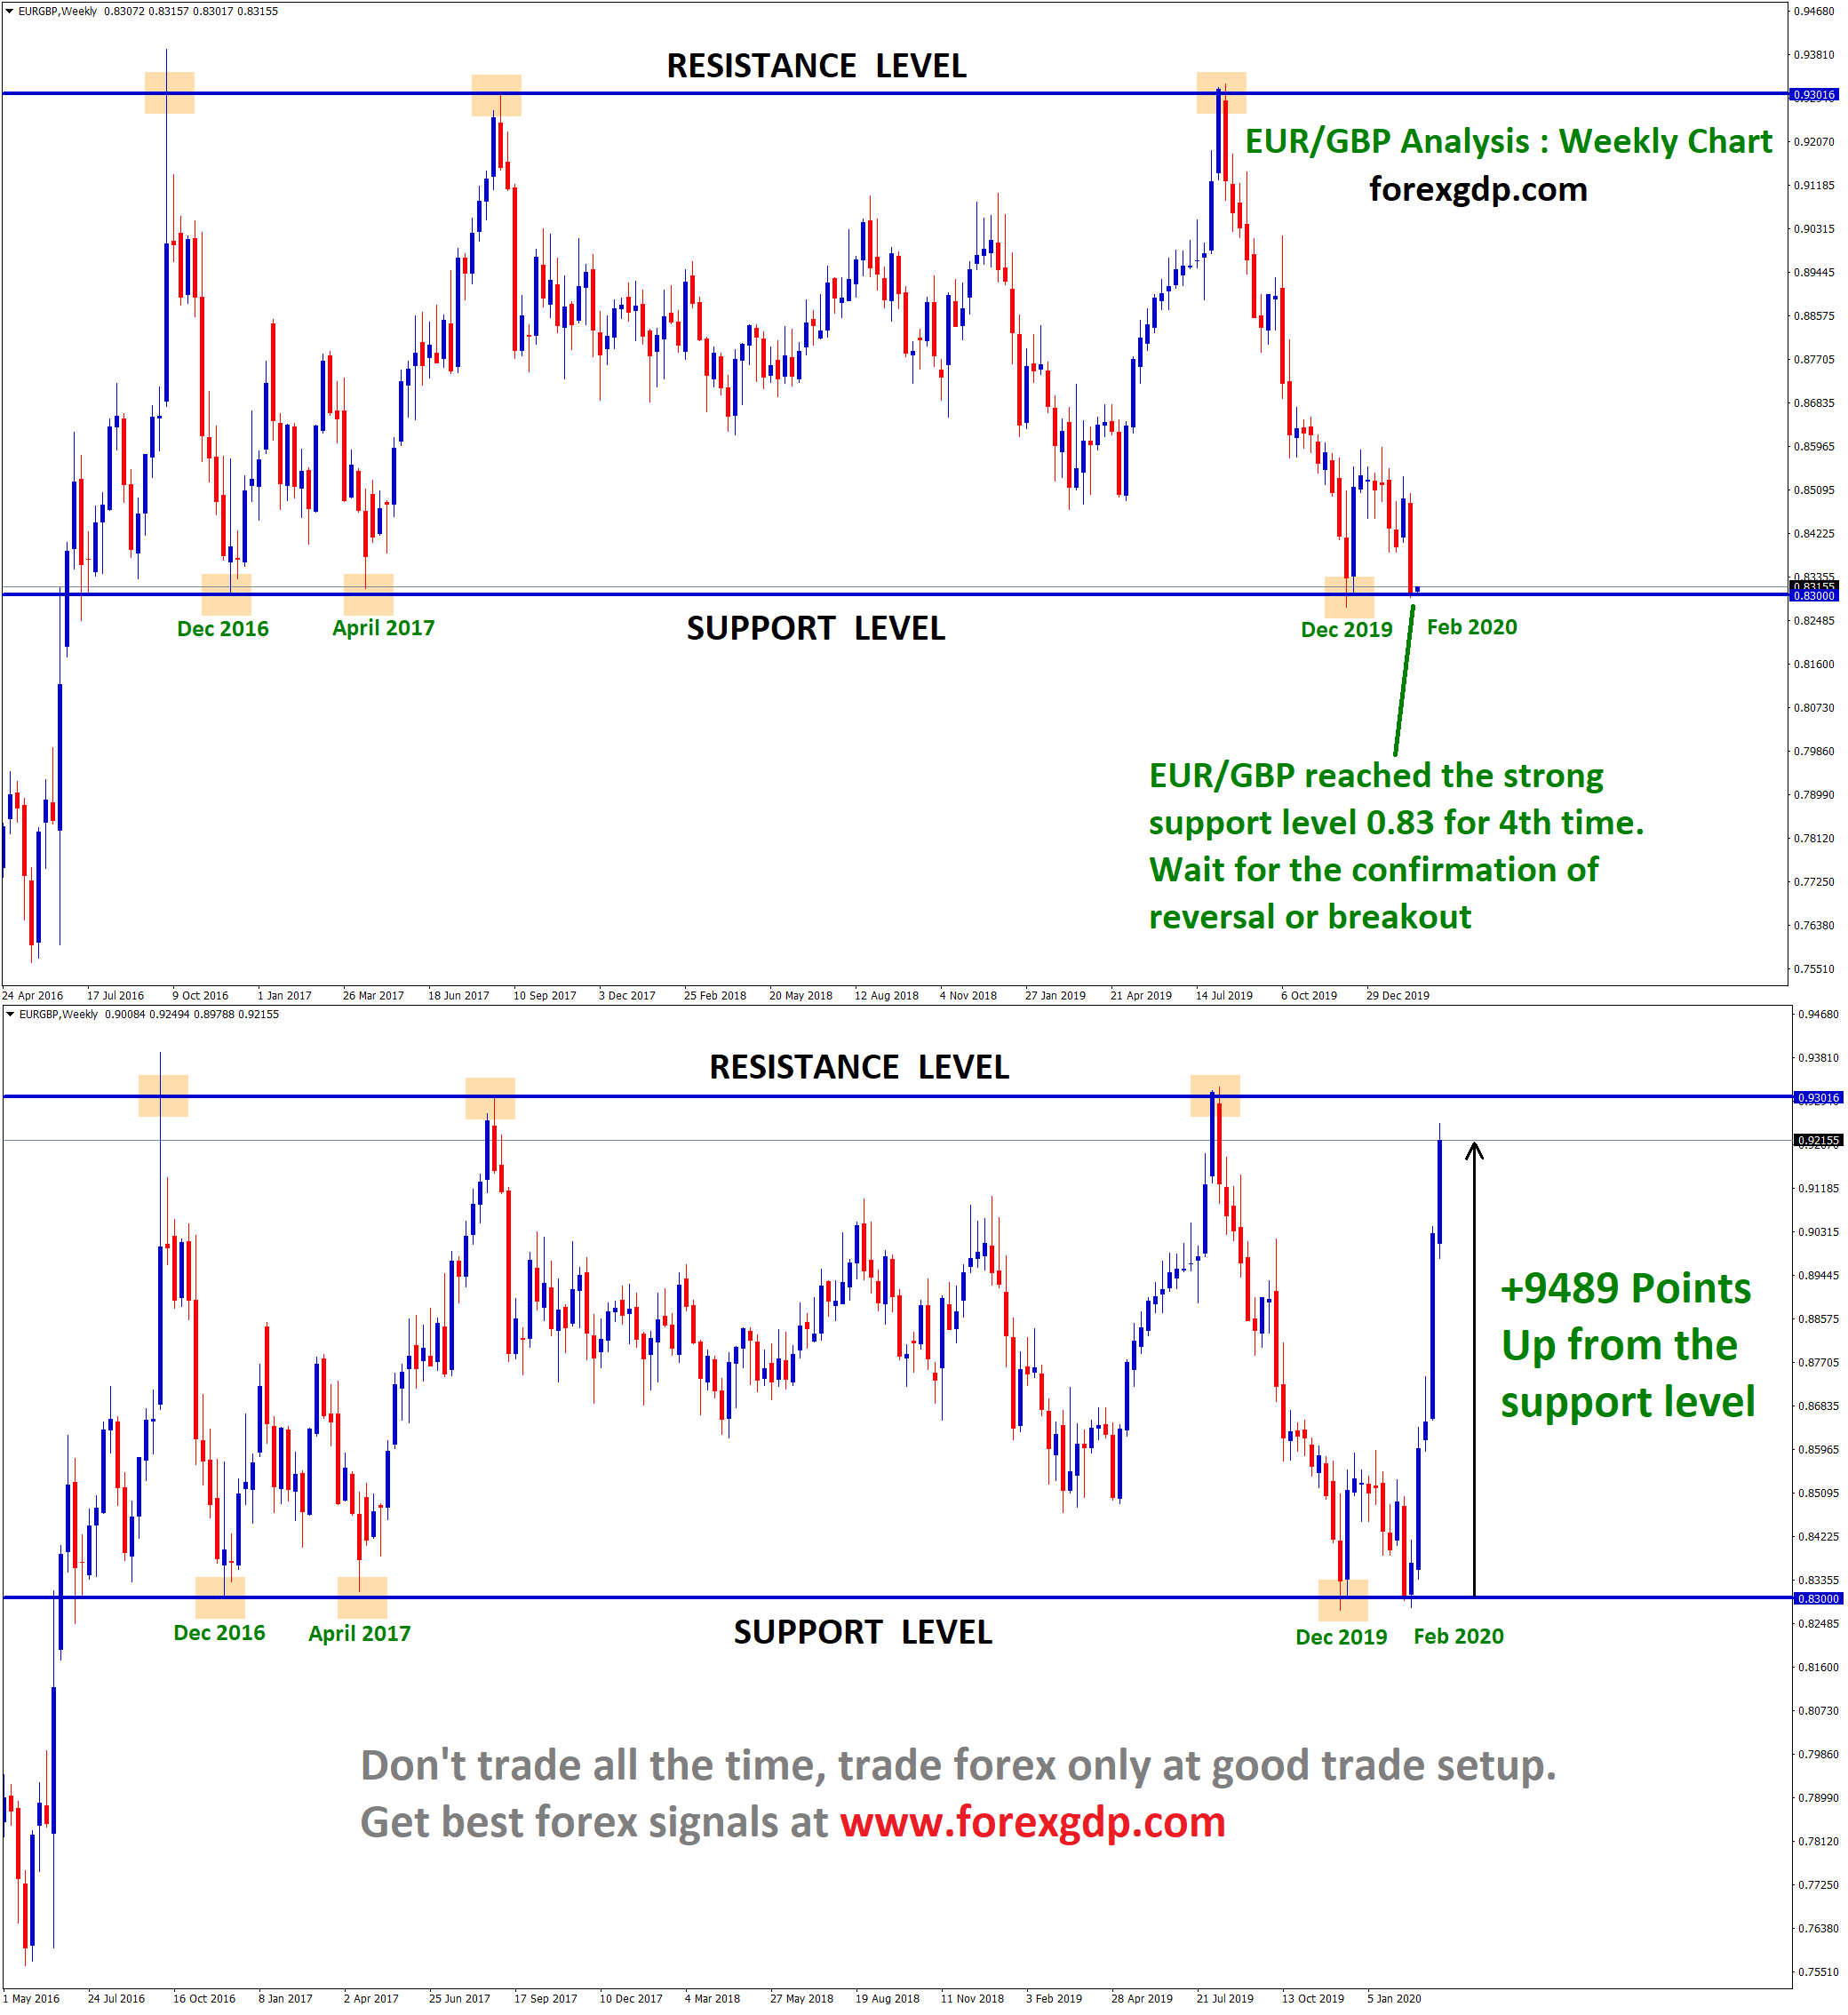 eur gbp went up +948 pips in few days due to coronavirus